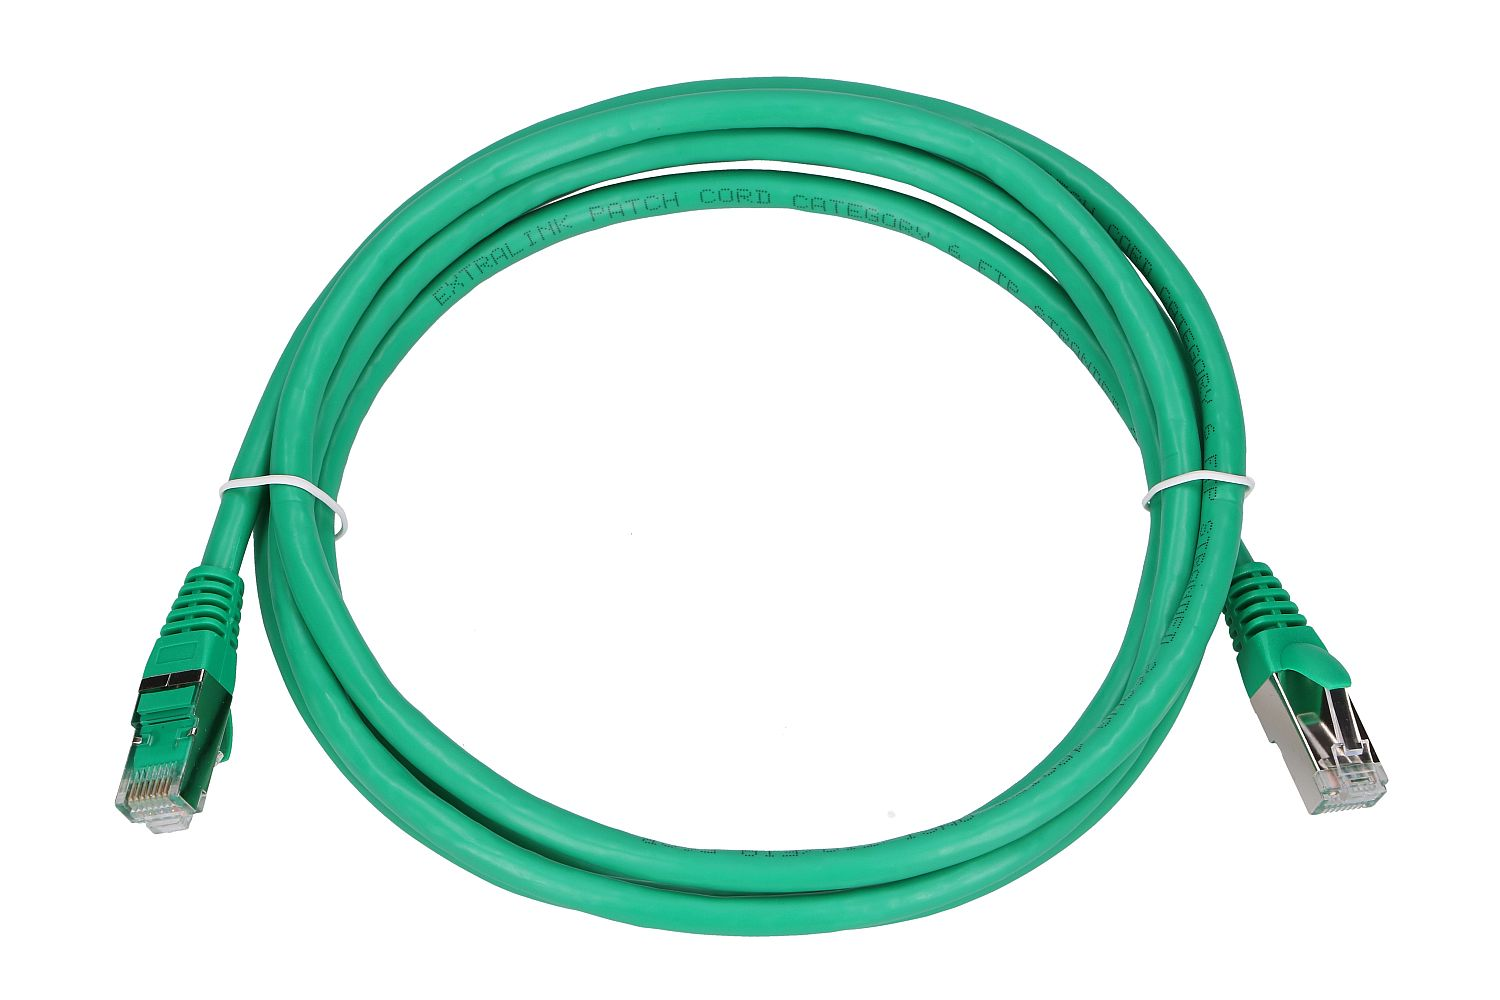 Extralink Kat.6 FTP 2m LAN Patchcord Copper twisted pair, 1Gbps Green